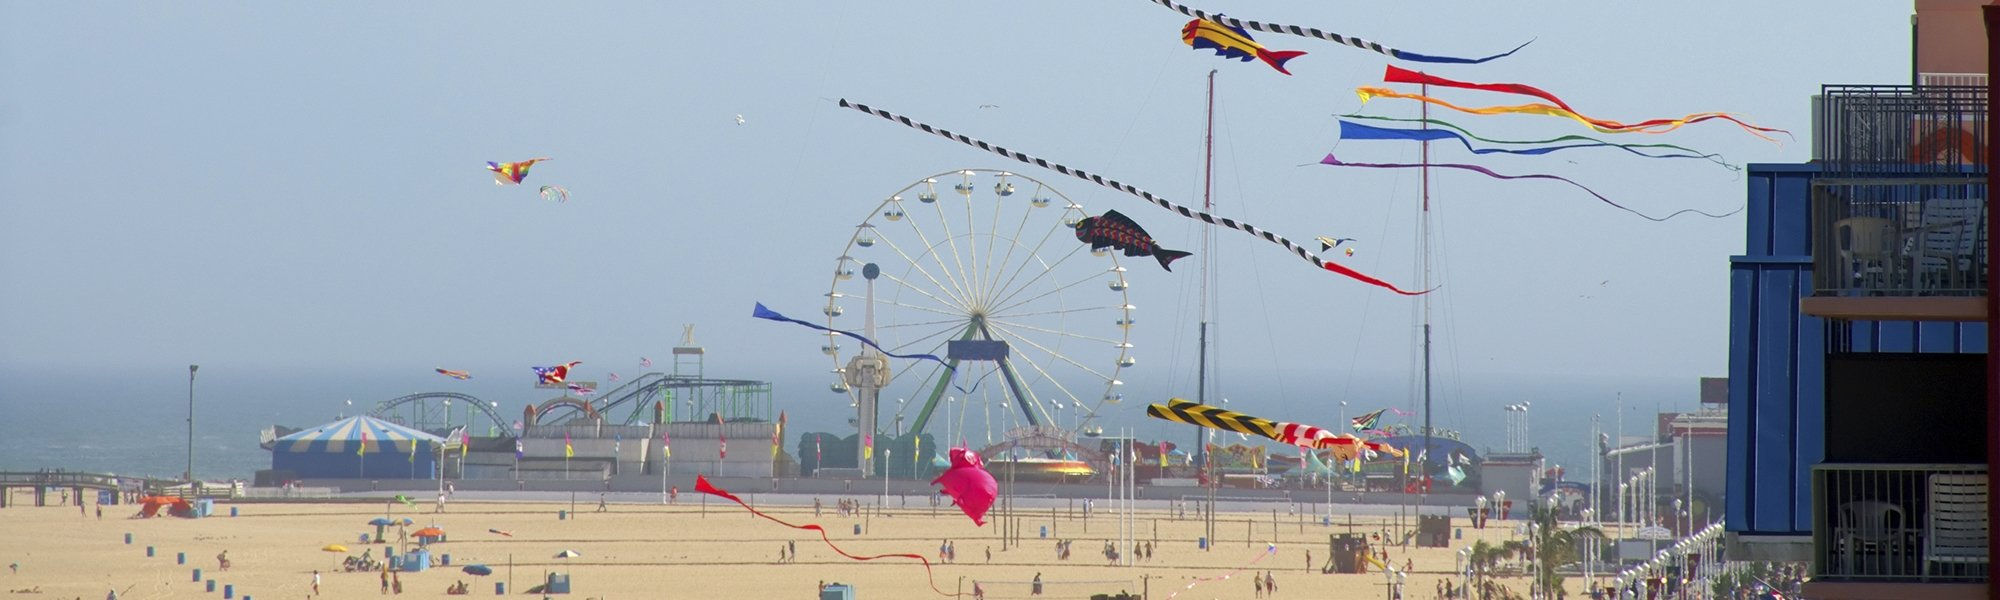 kites flying over ocean city md boardwalk